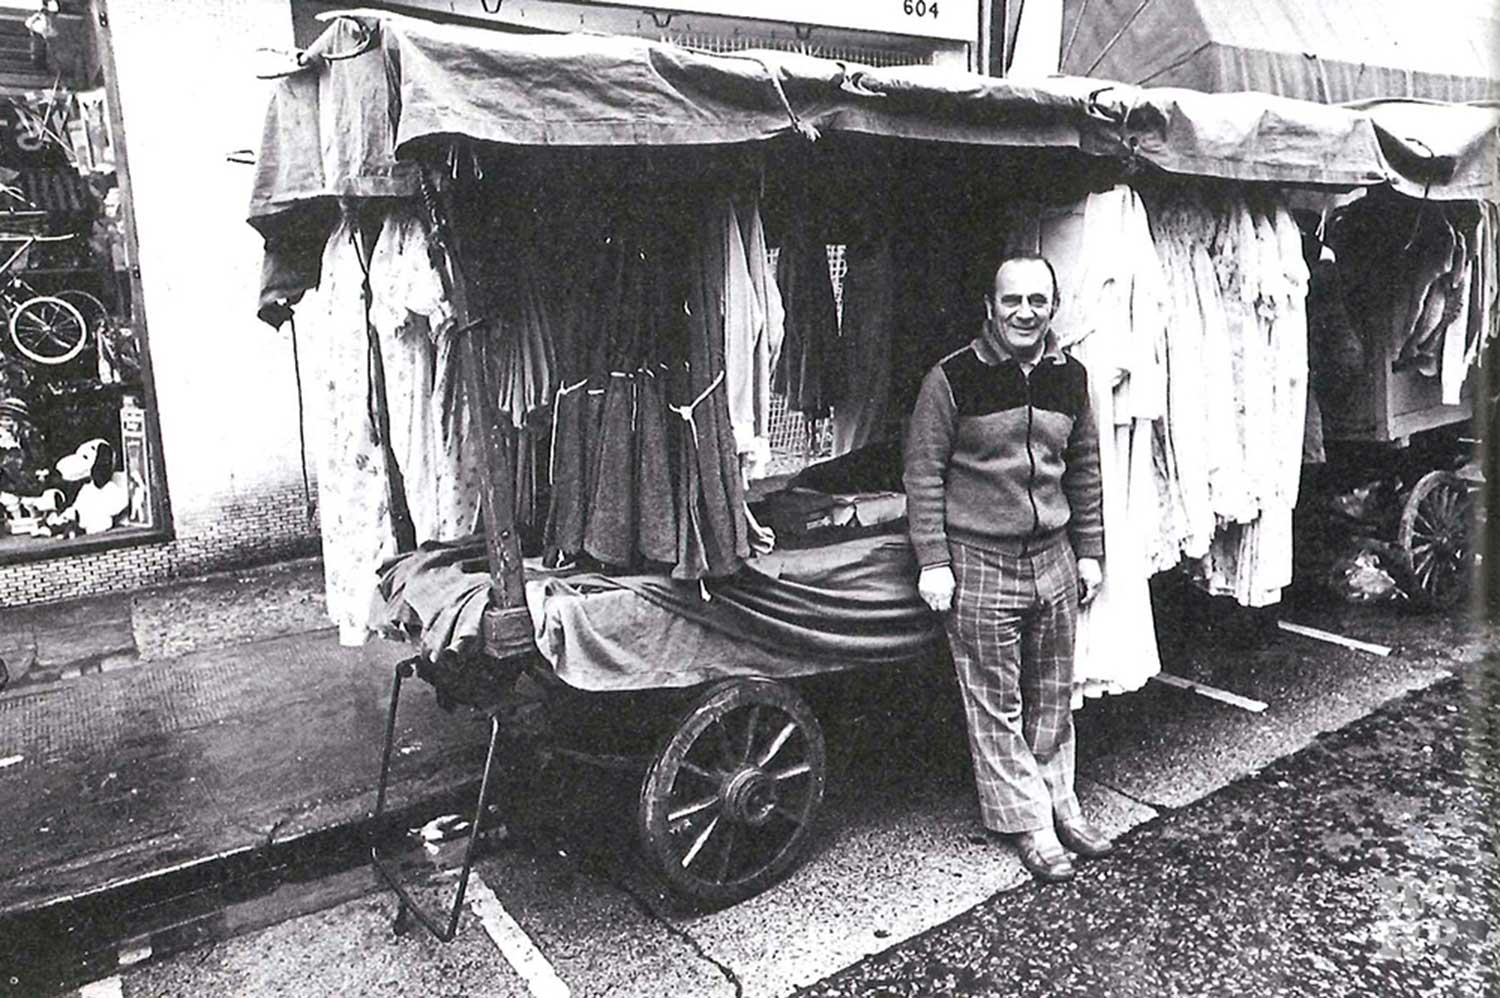 Roman Road Market trader Harry da Costa, wearing check trousers, at his stall in the 1970s